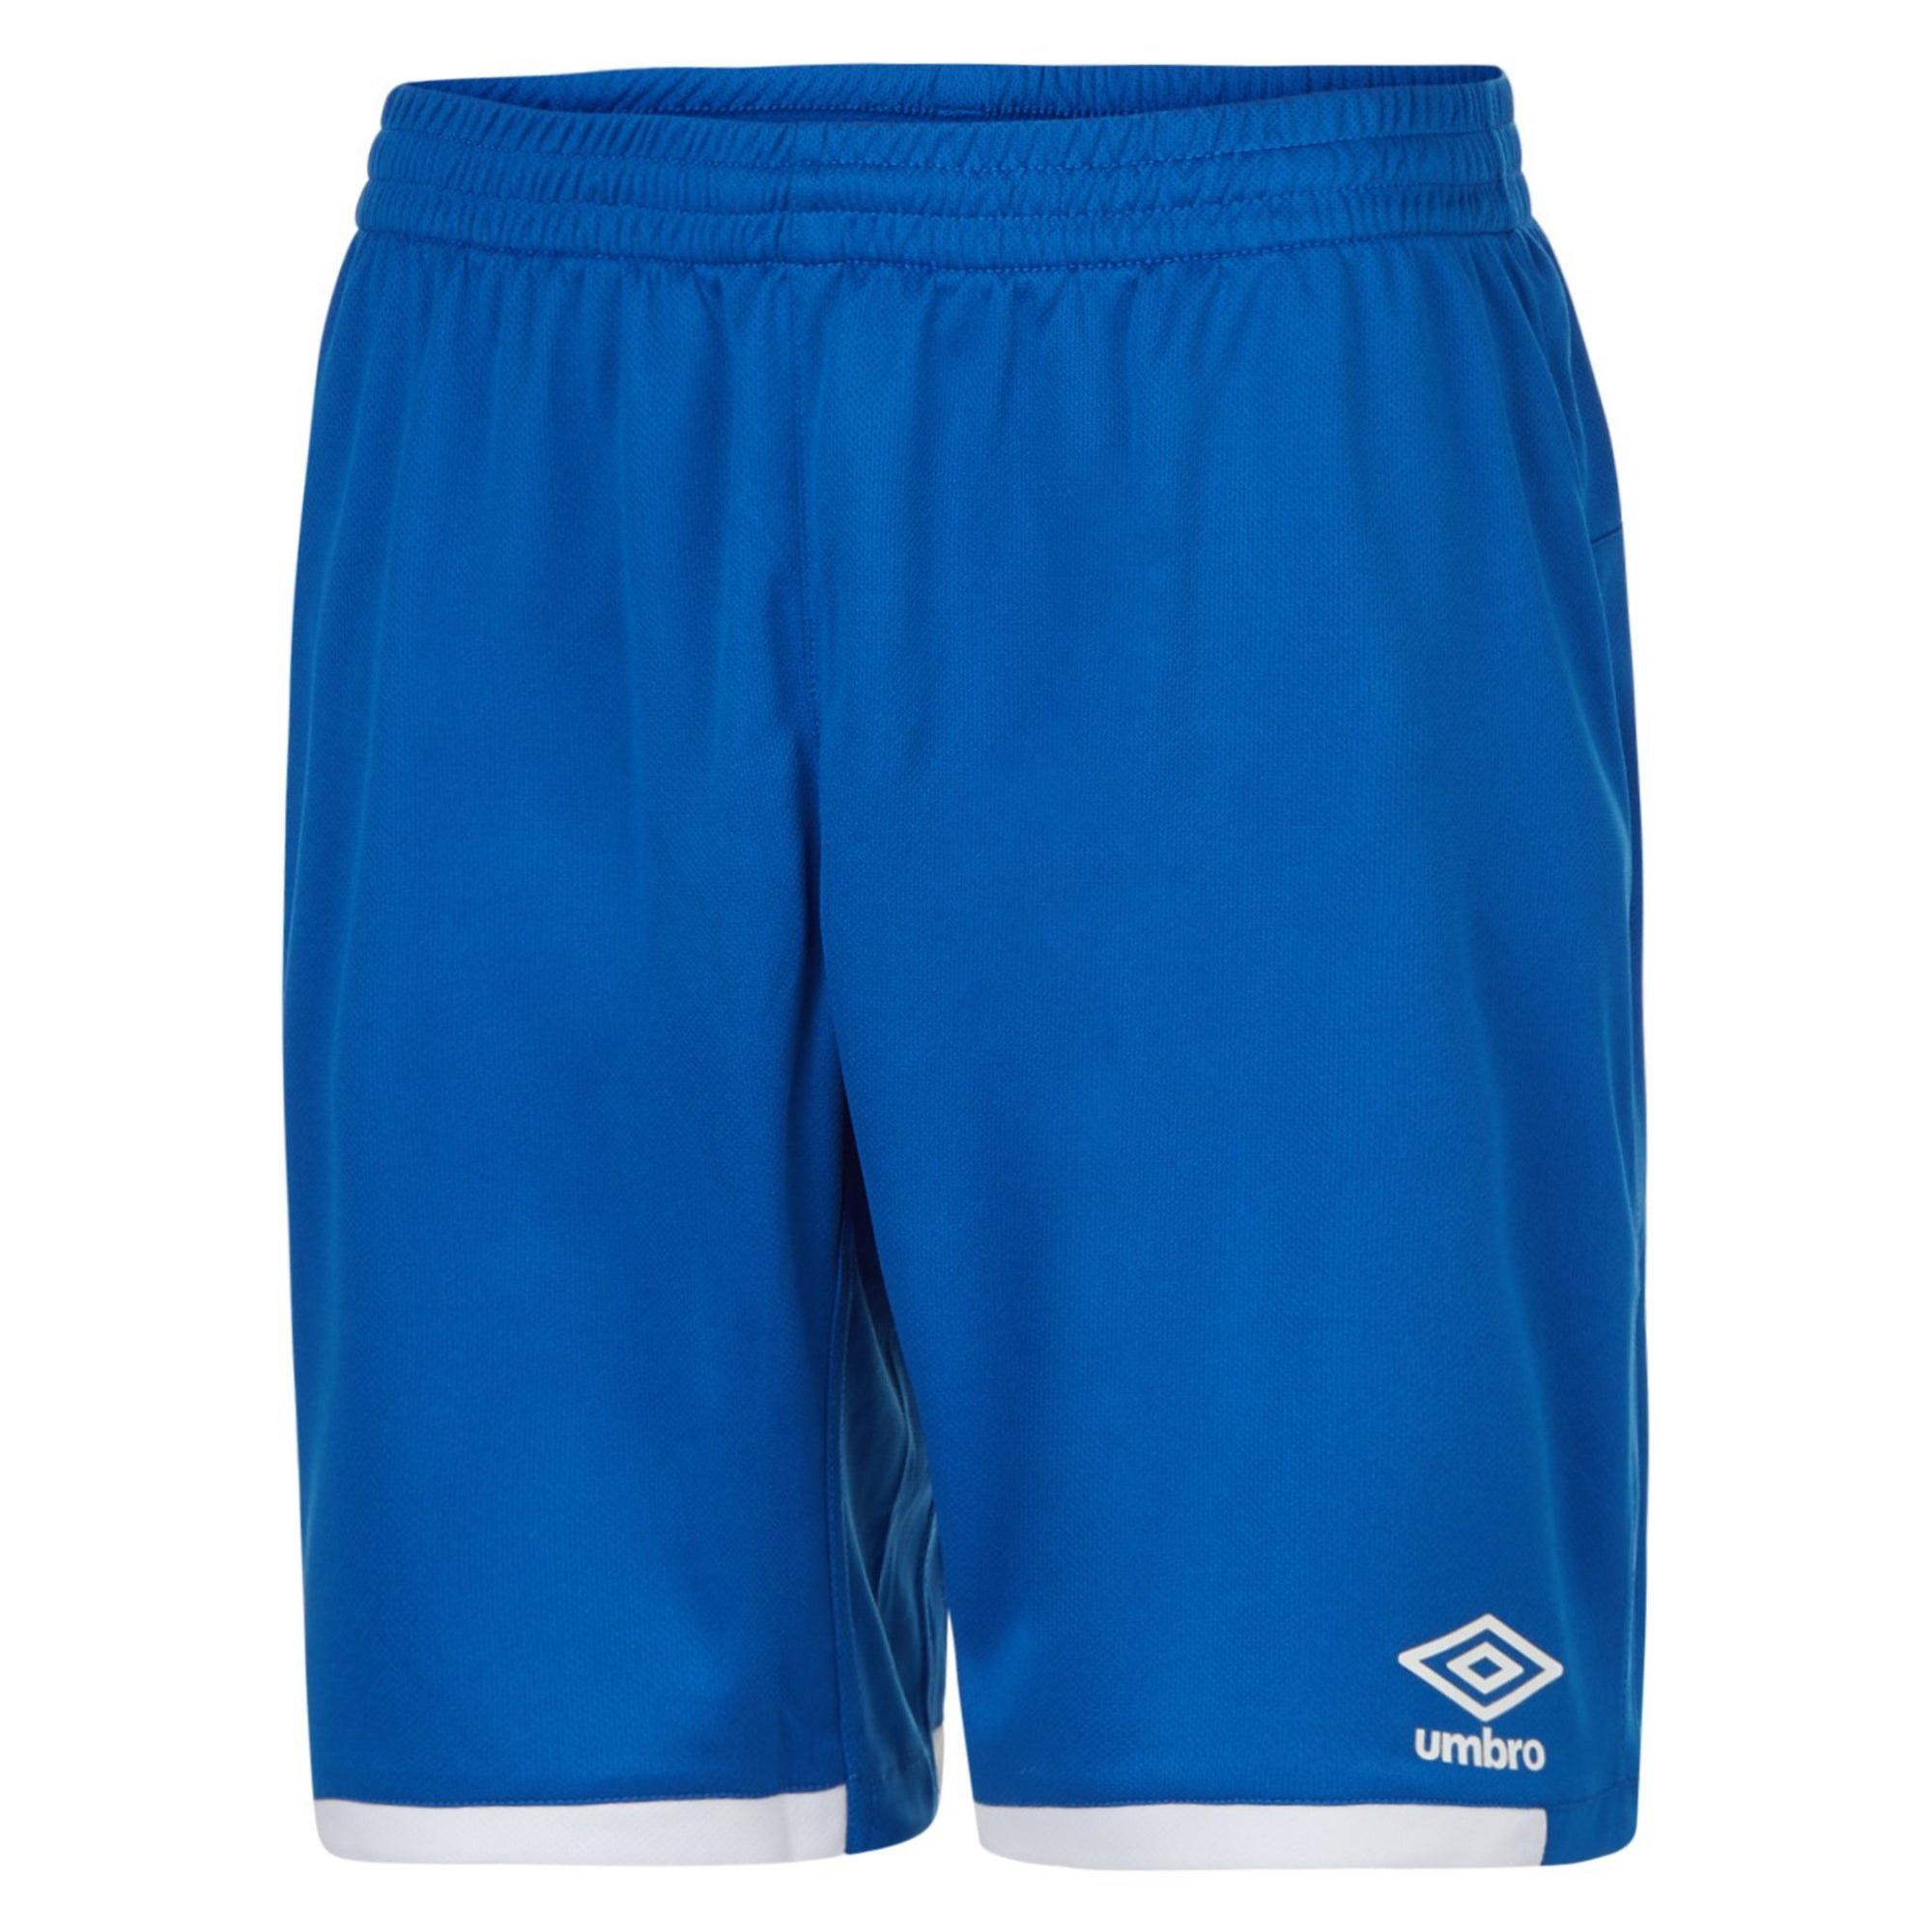 royal blue umbro premier shorts with white contrast hem